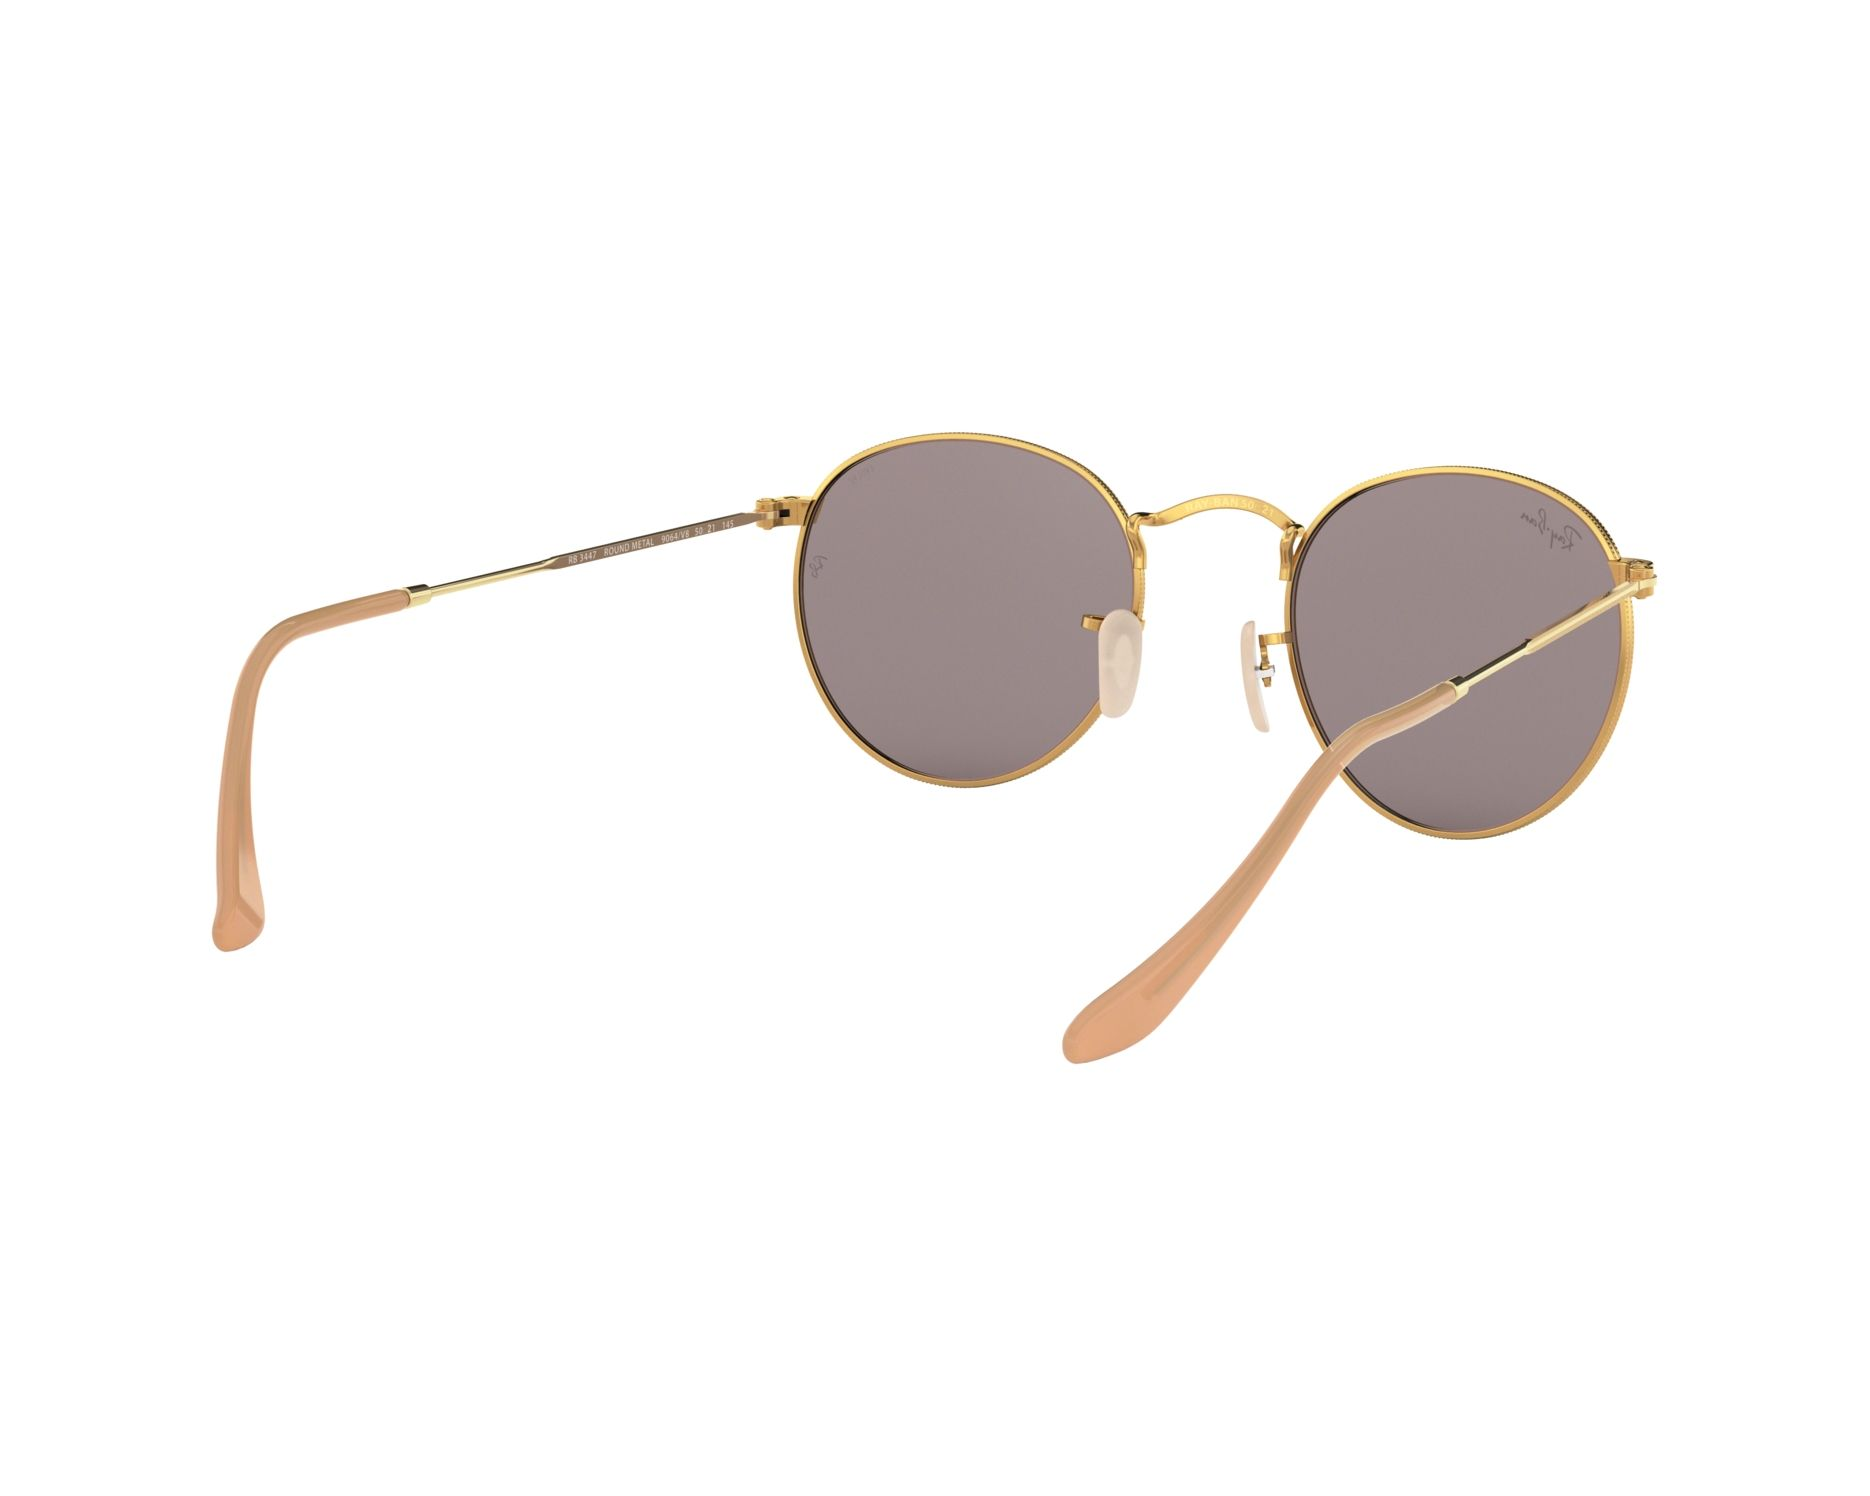 68787e4ec6 Ray-Ban Sunglasses RB-3447 9064V8 Gold with Blue Grey